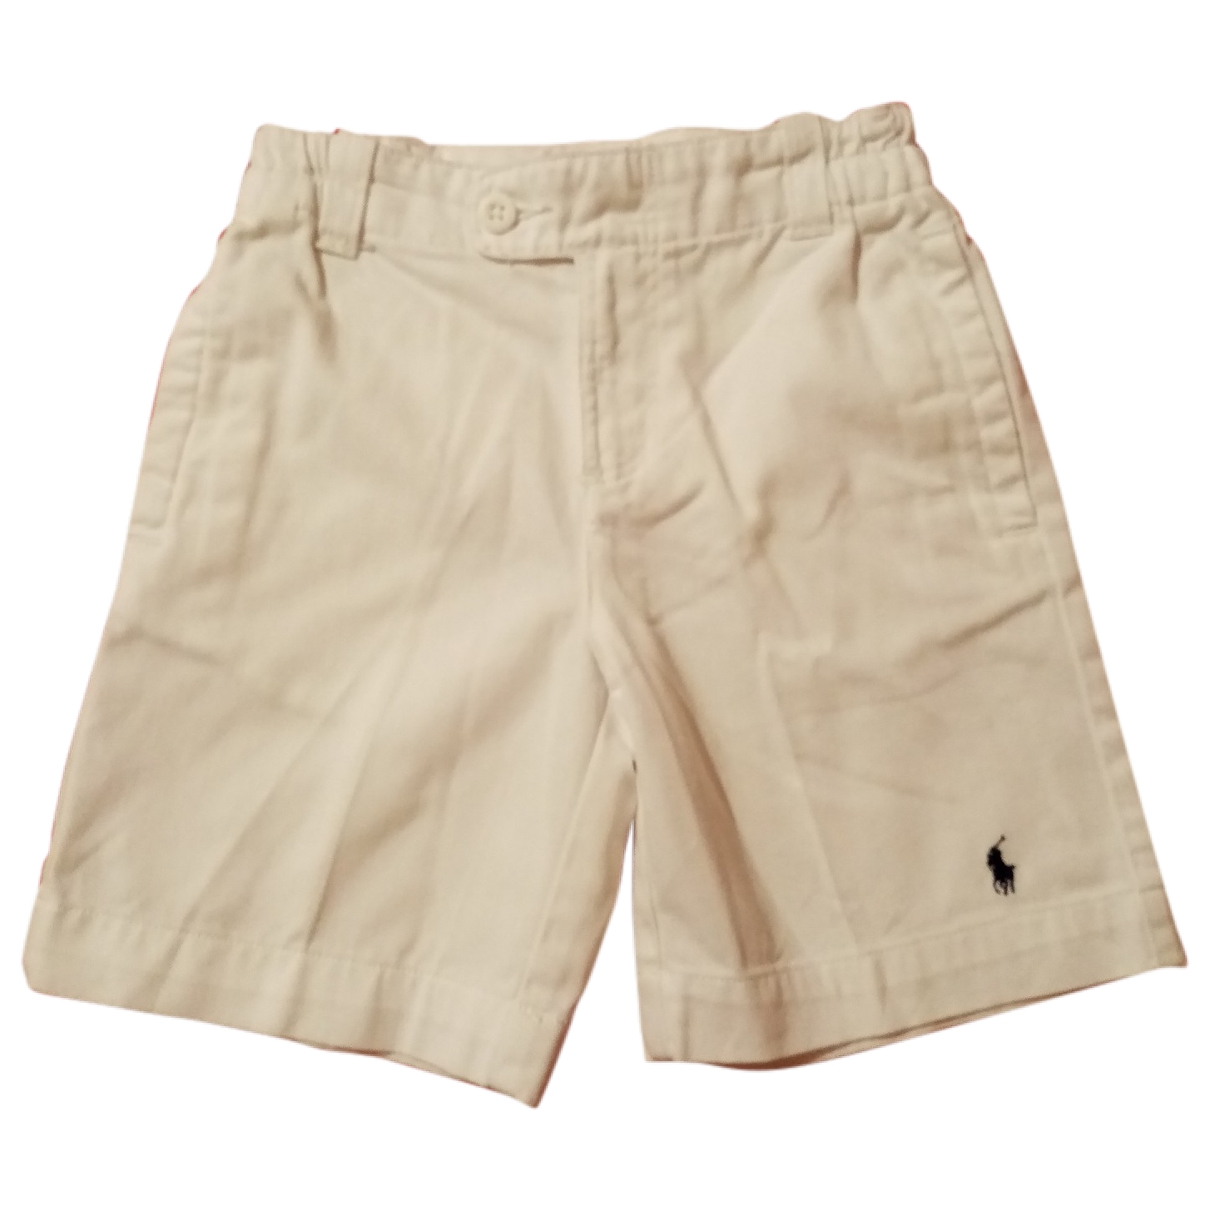 Polo Ralph Lauren \N White Cotton Shorts for Kids 5 years - up to 108cm FR